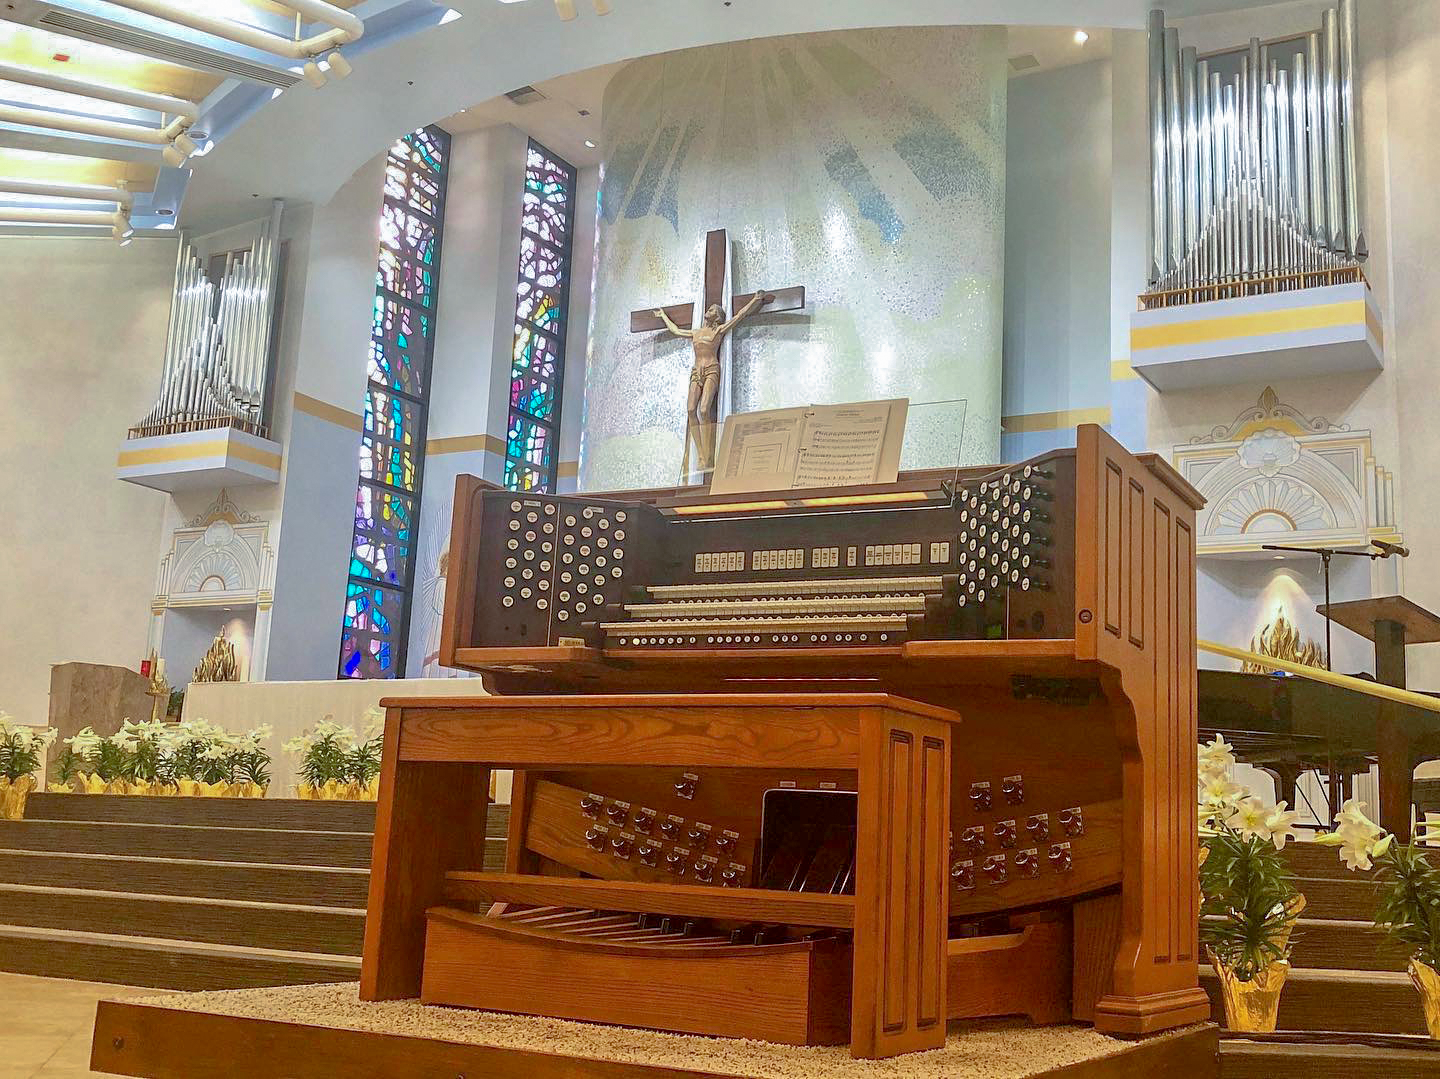 The Rodgers 3-manual Trillium organ console along with its six ranks of pipe work